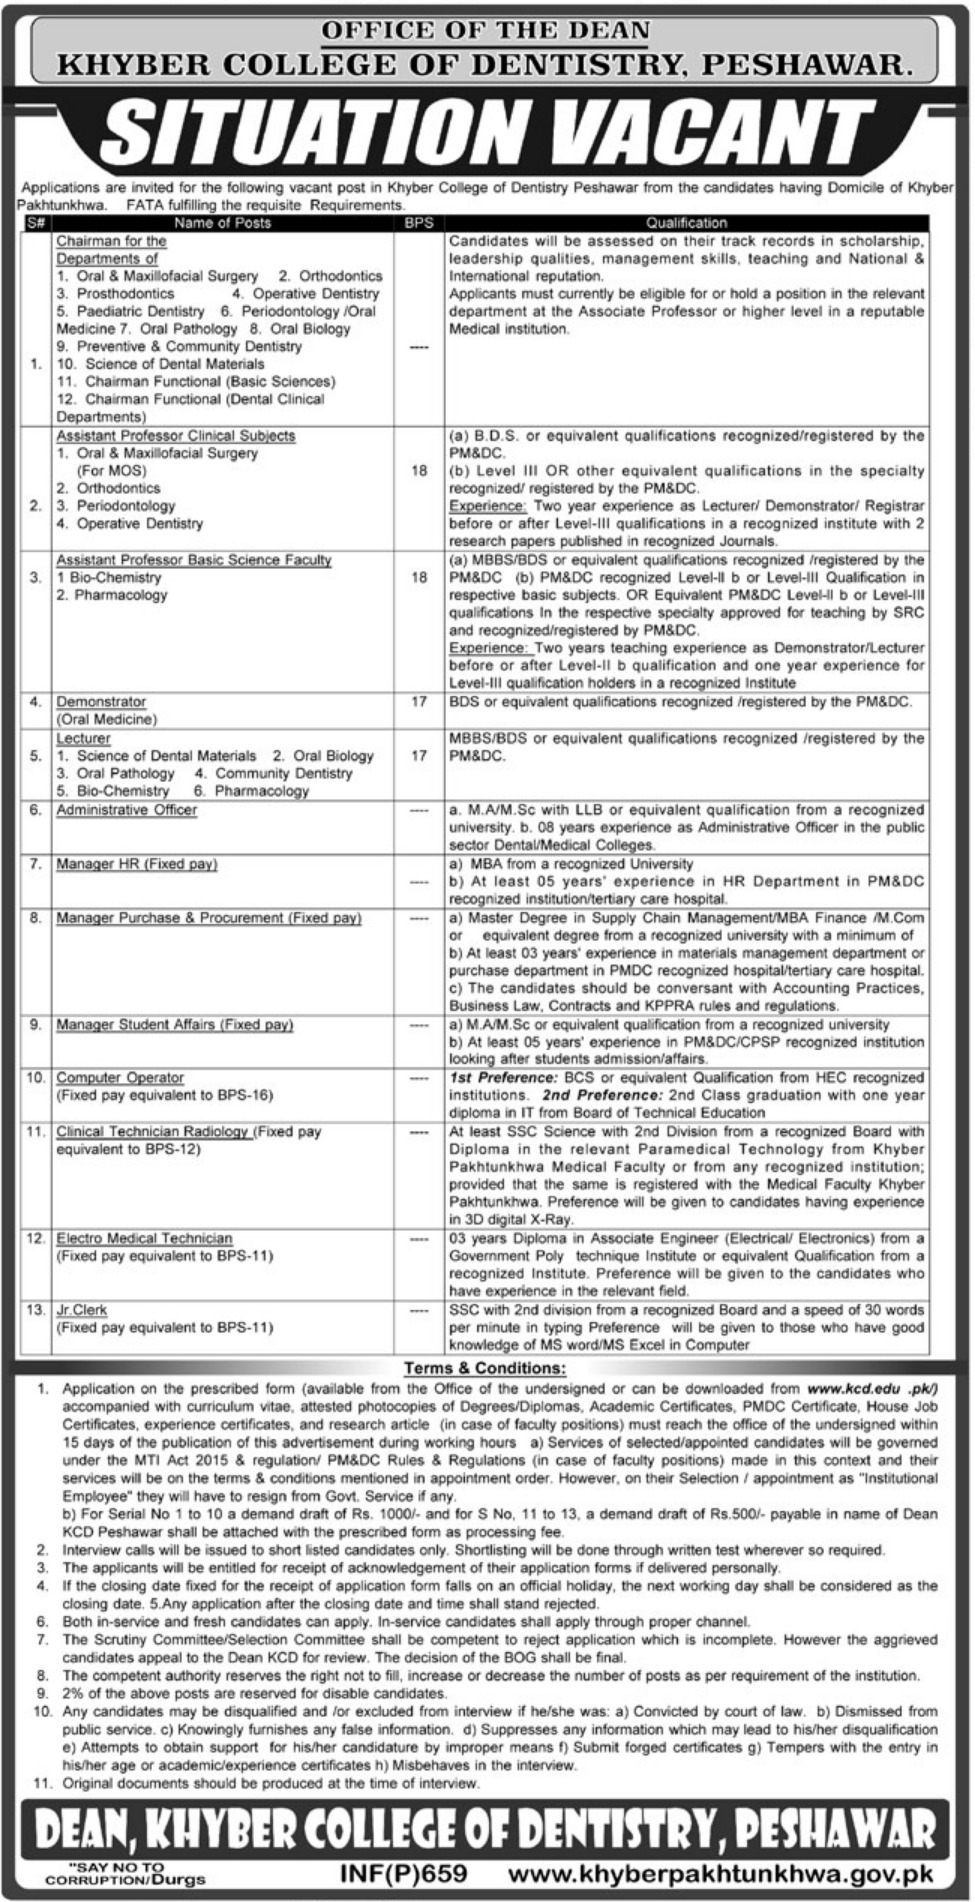 Khyber College of Dentistry Peshawar Jobs 2019 KPK Latest